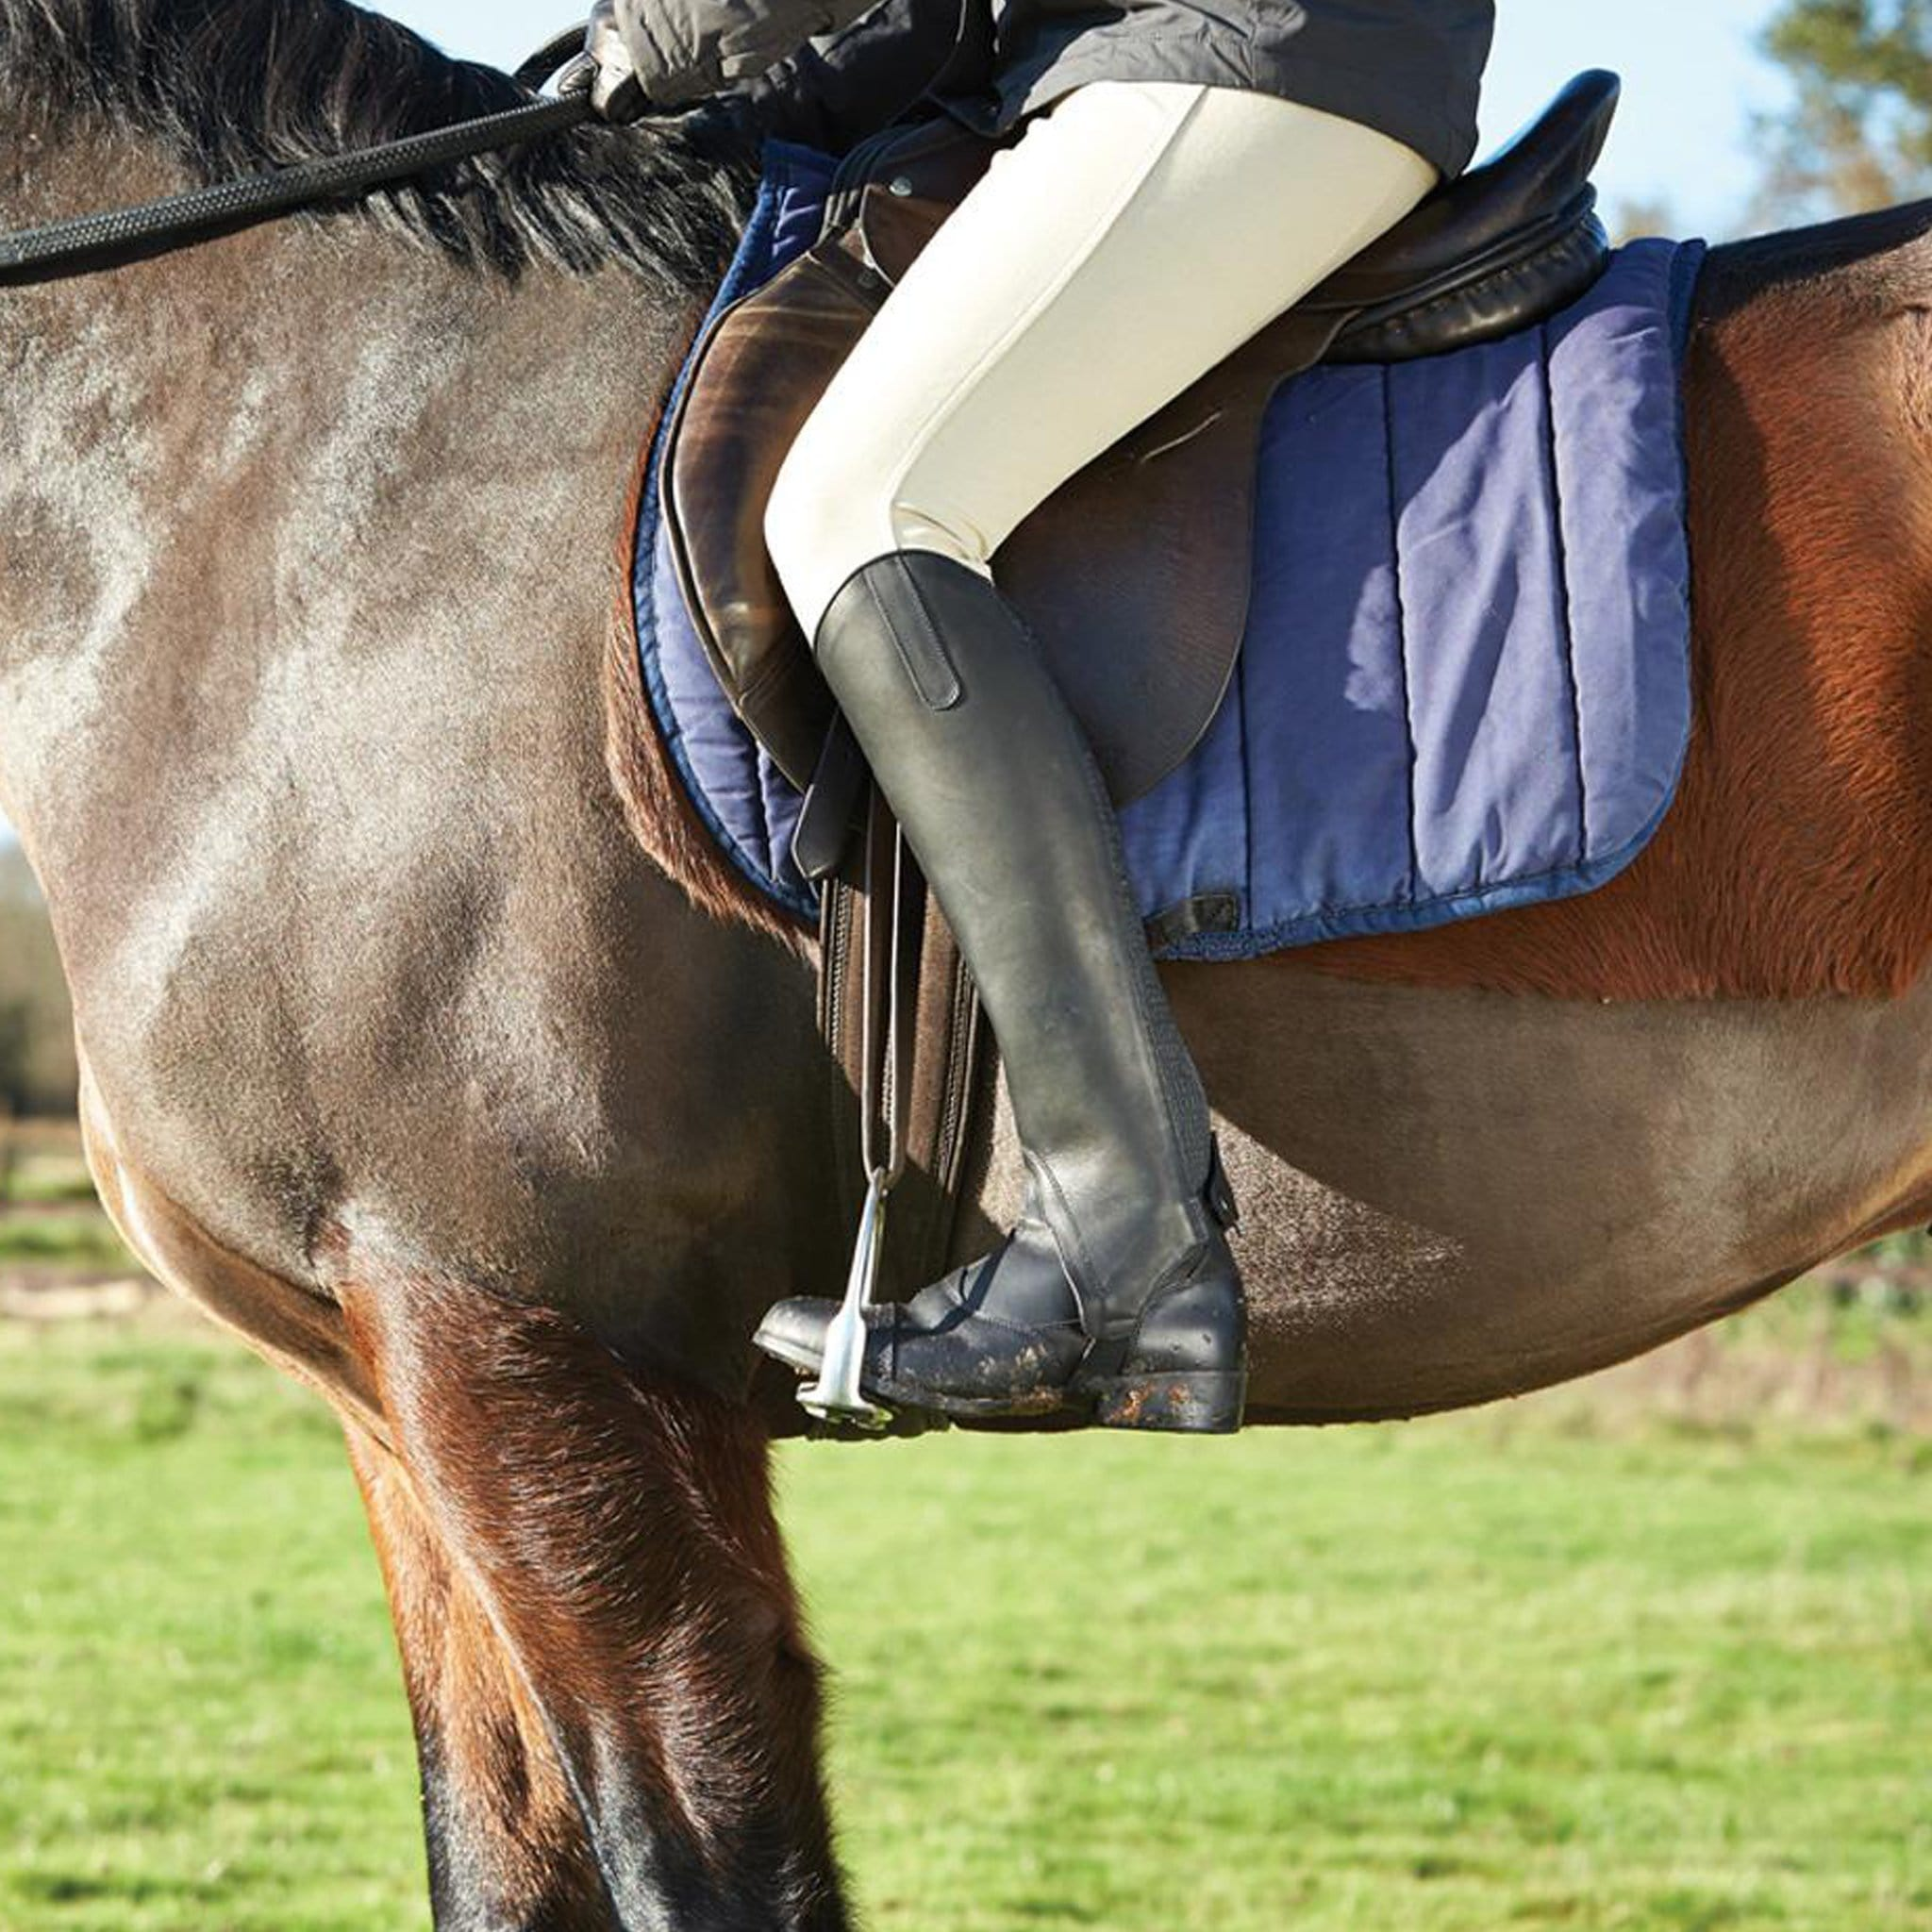 Dublin Meridian Gaiters Black Rider On Horse 589608